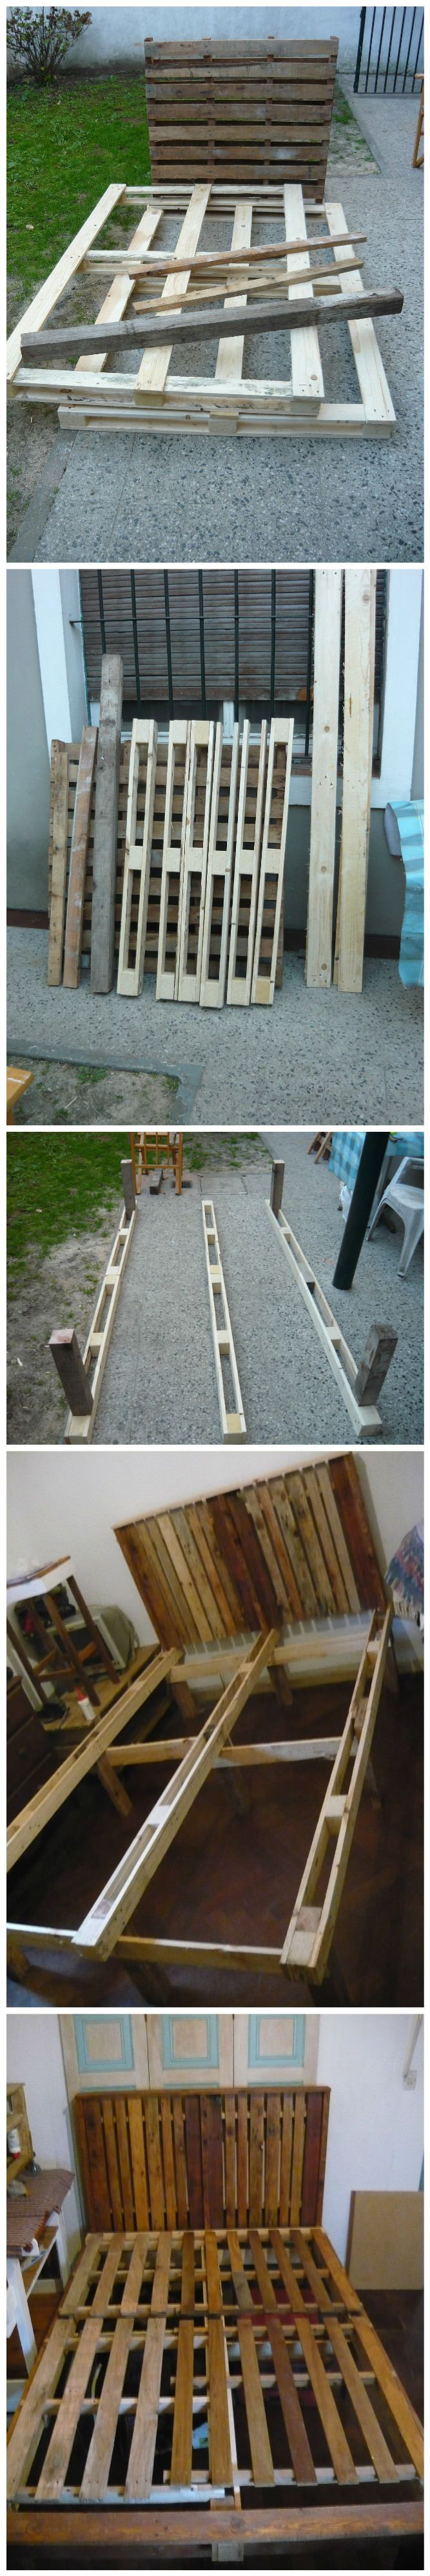 Slatted bed frames from pallets pallet ideas recycled for Recycled pallet bed frame